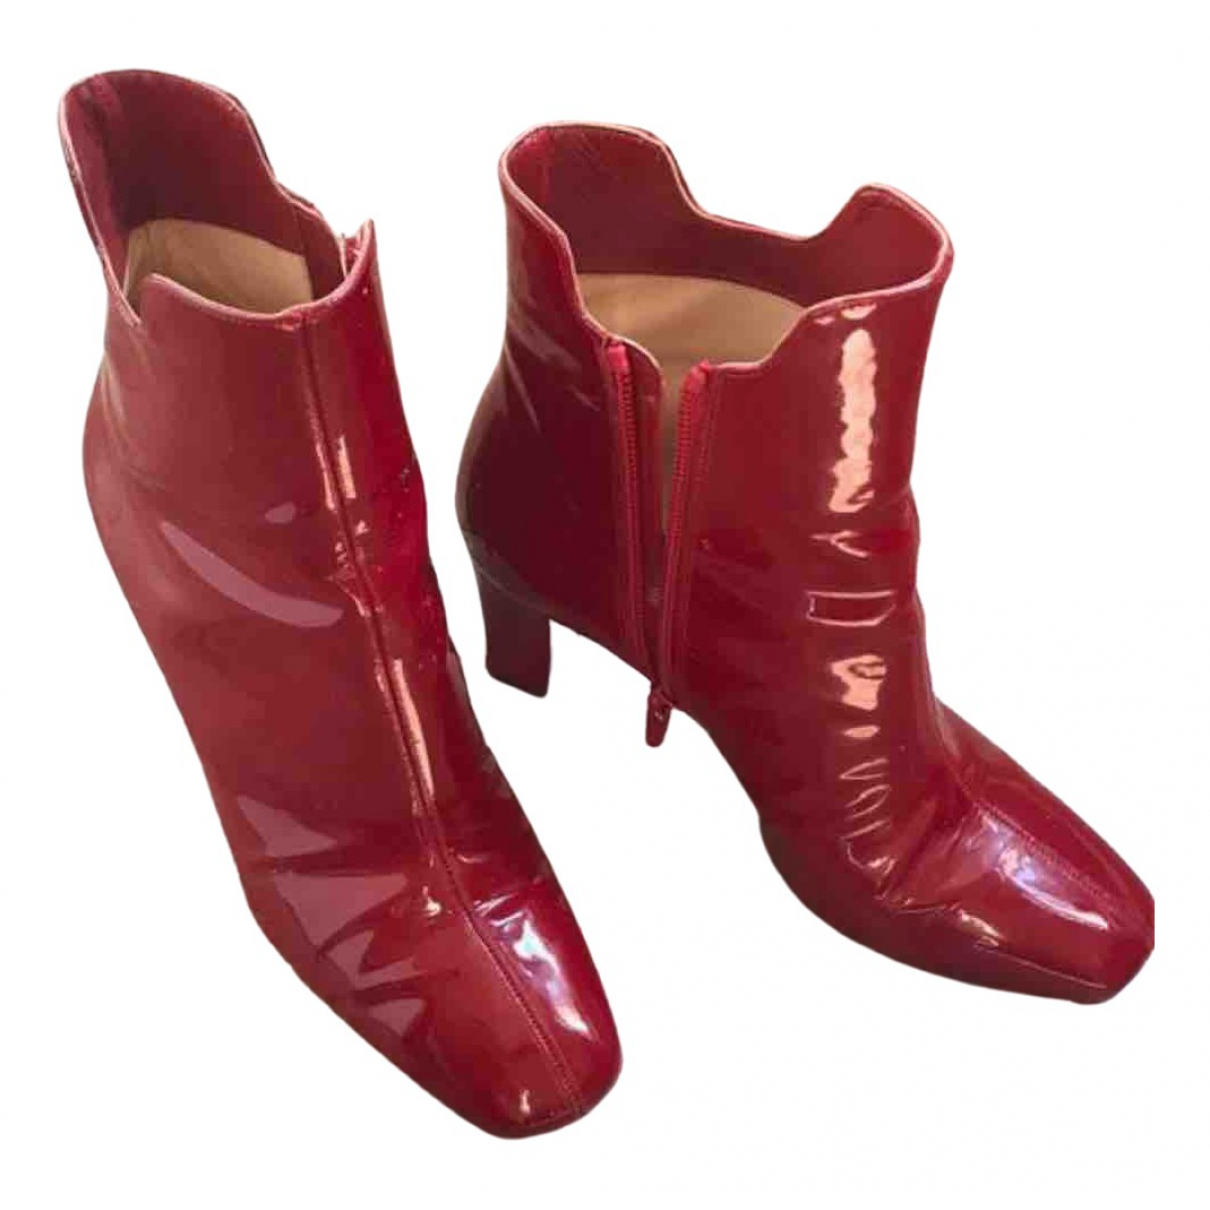 Christian Louboutin \N Red Patent leather Ankle boots for Women 36.5 EU